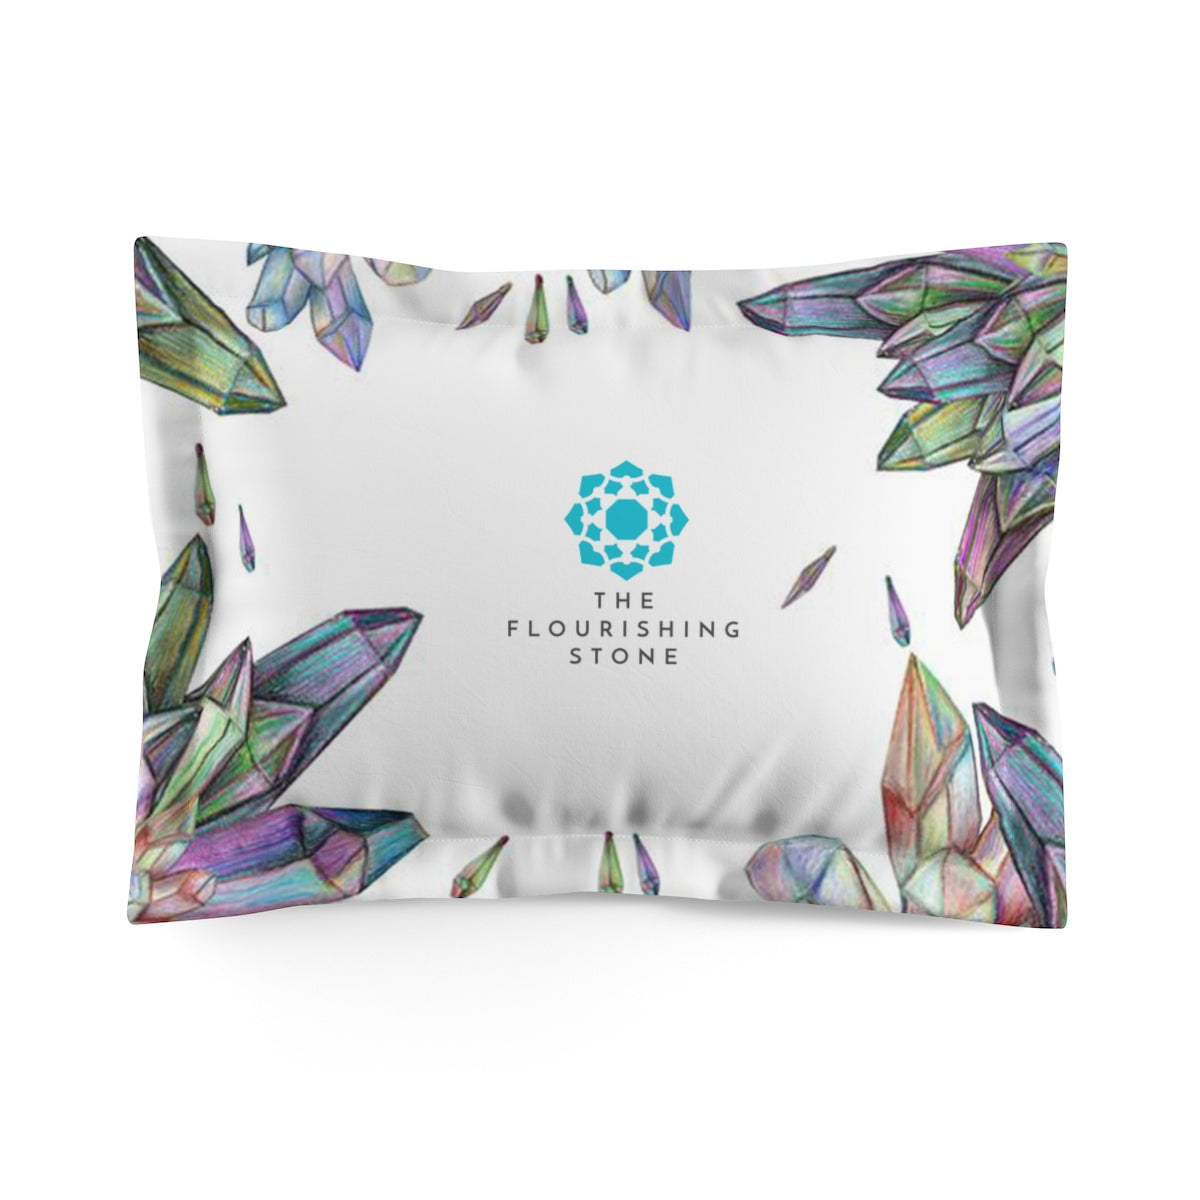 Crystals with The Flourishing Stone Microfiber Pillow Sham